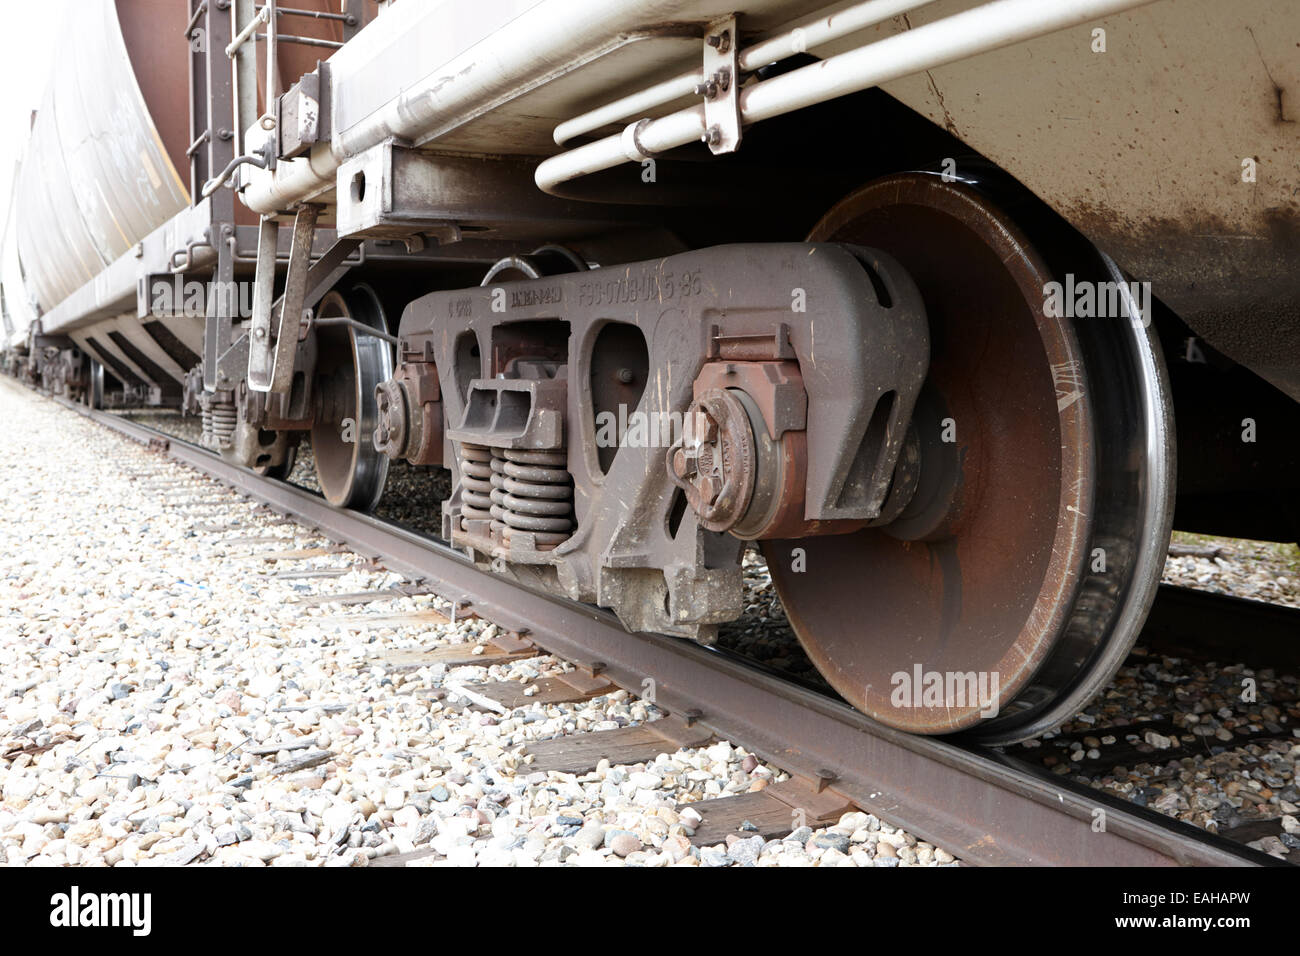 Railroad Car Wheels Stock Photos & Railroad Car Wheels Stock